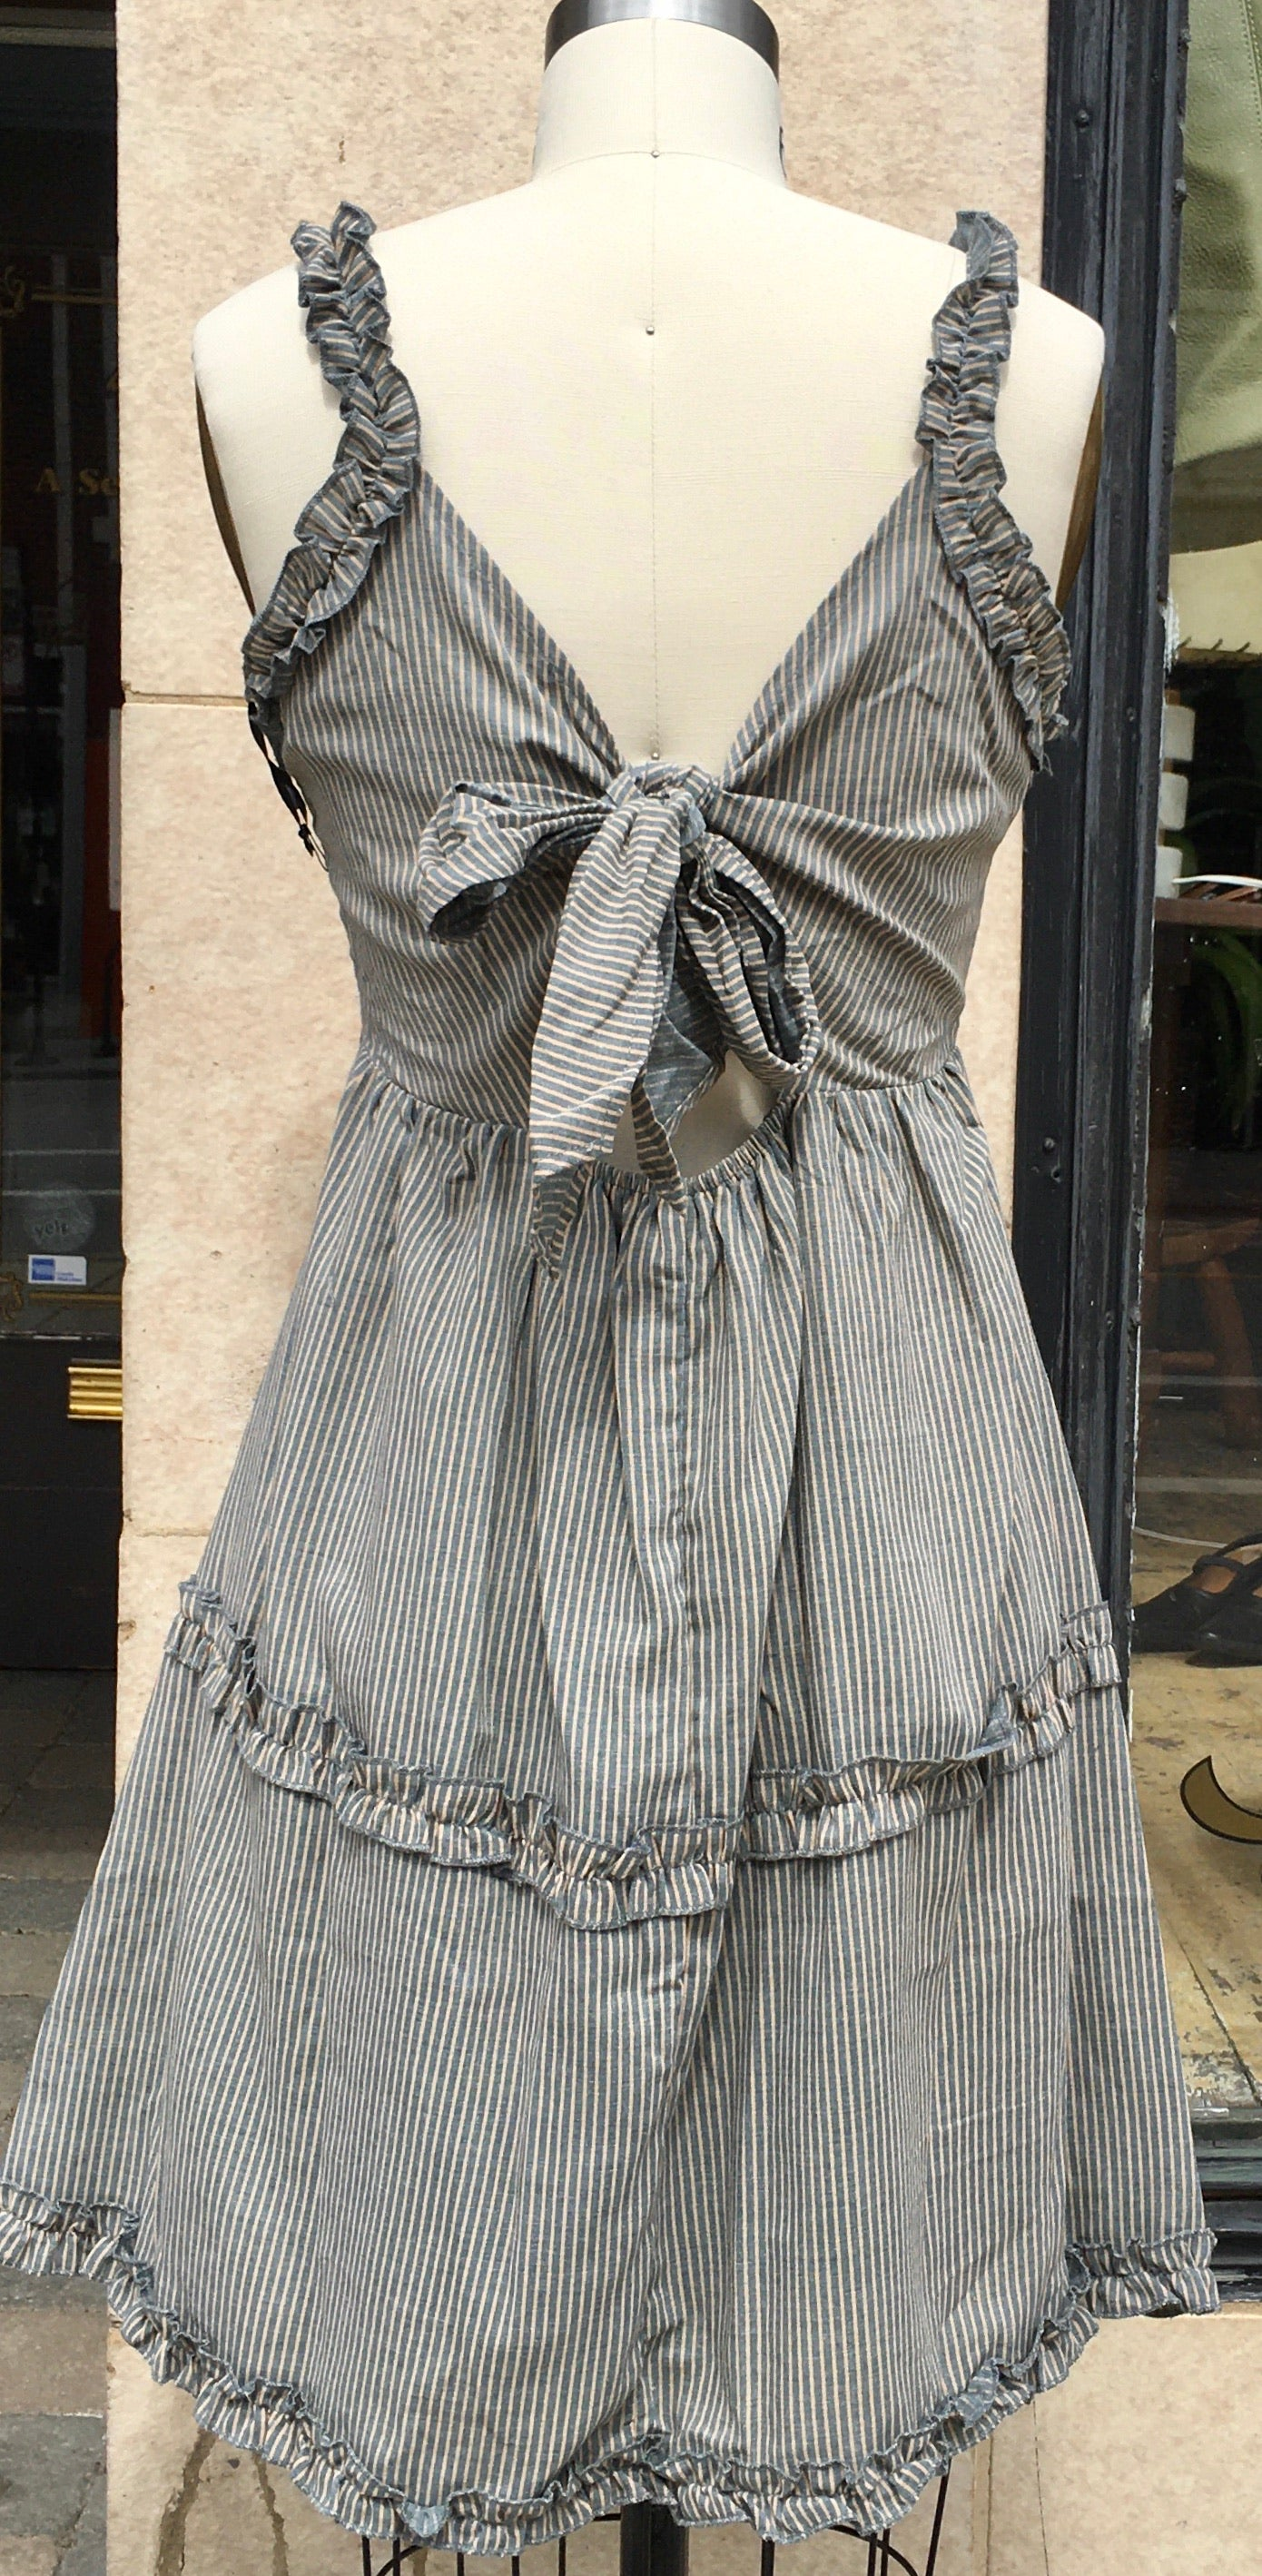 Pinstripe dress